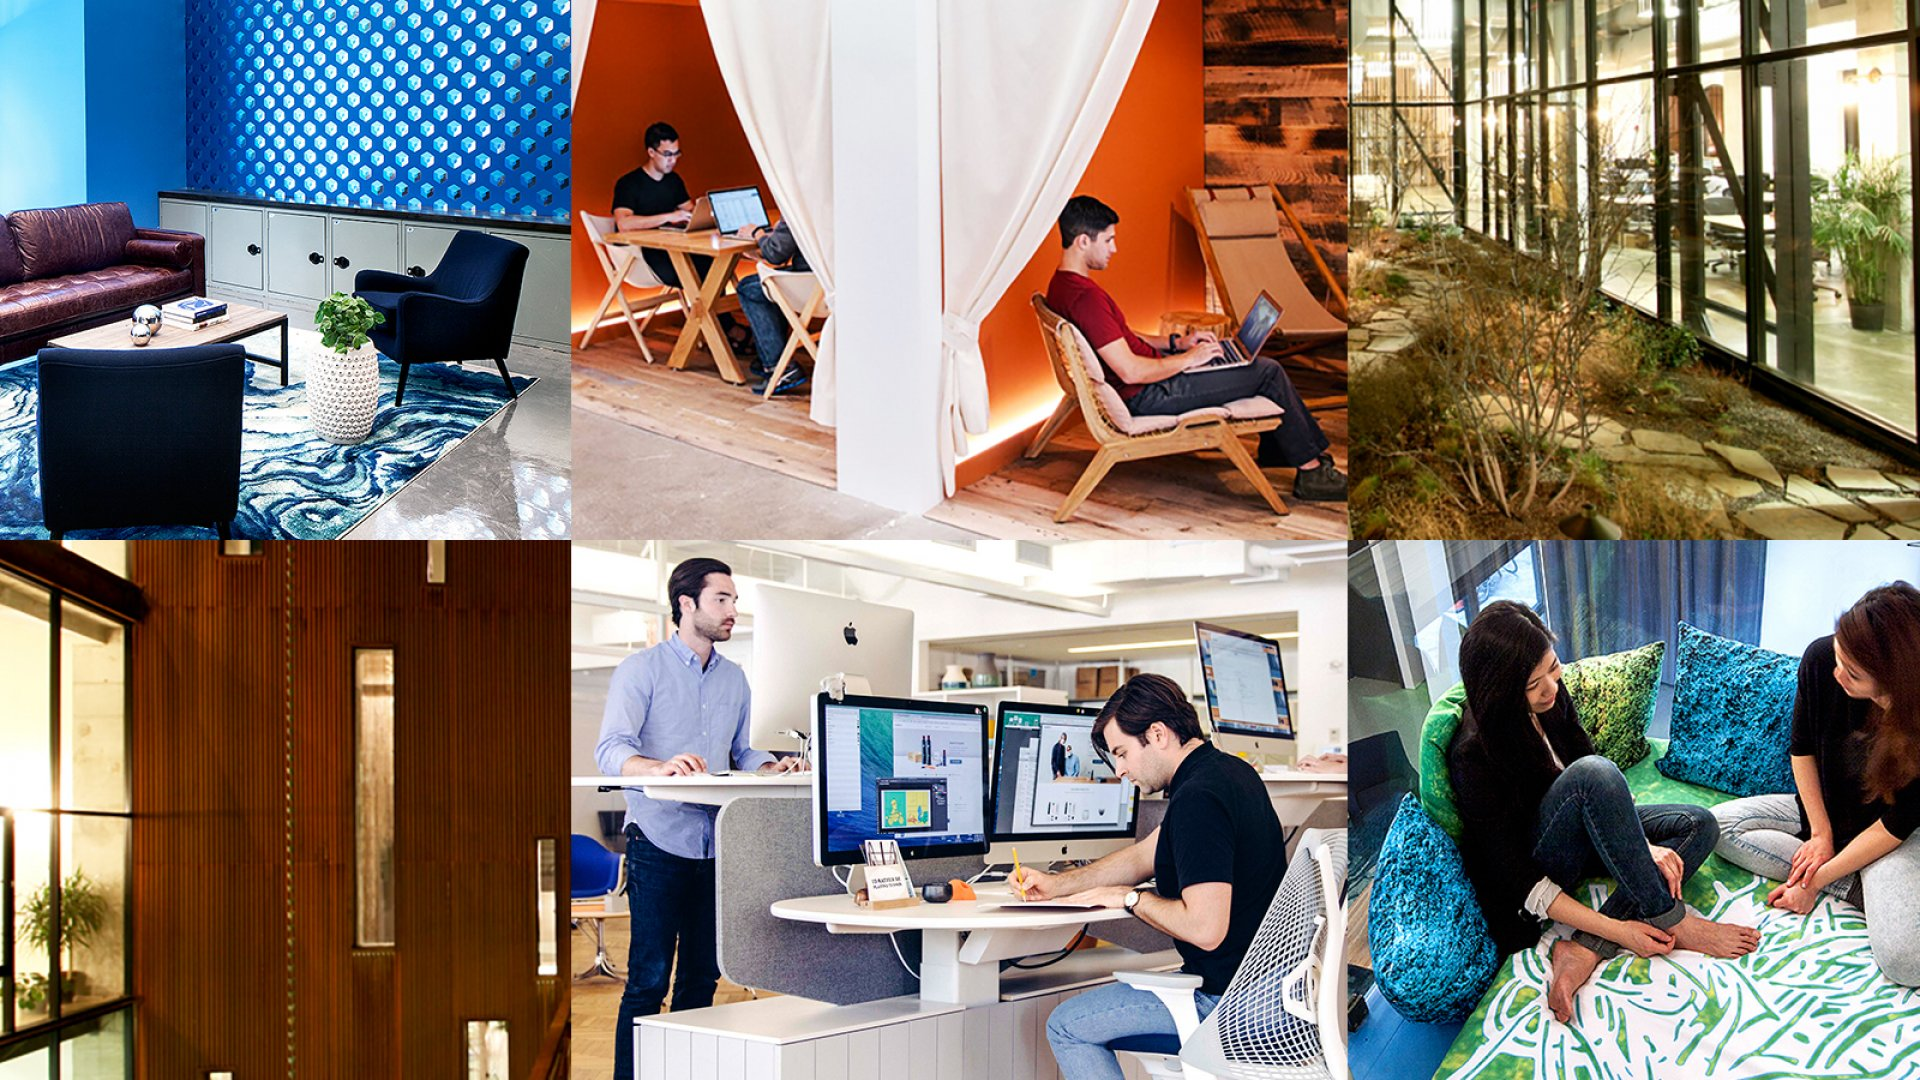 The Next Hot Thing in Cool Office Design